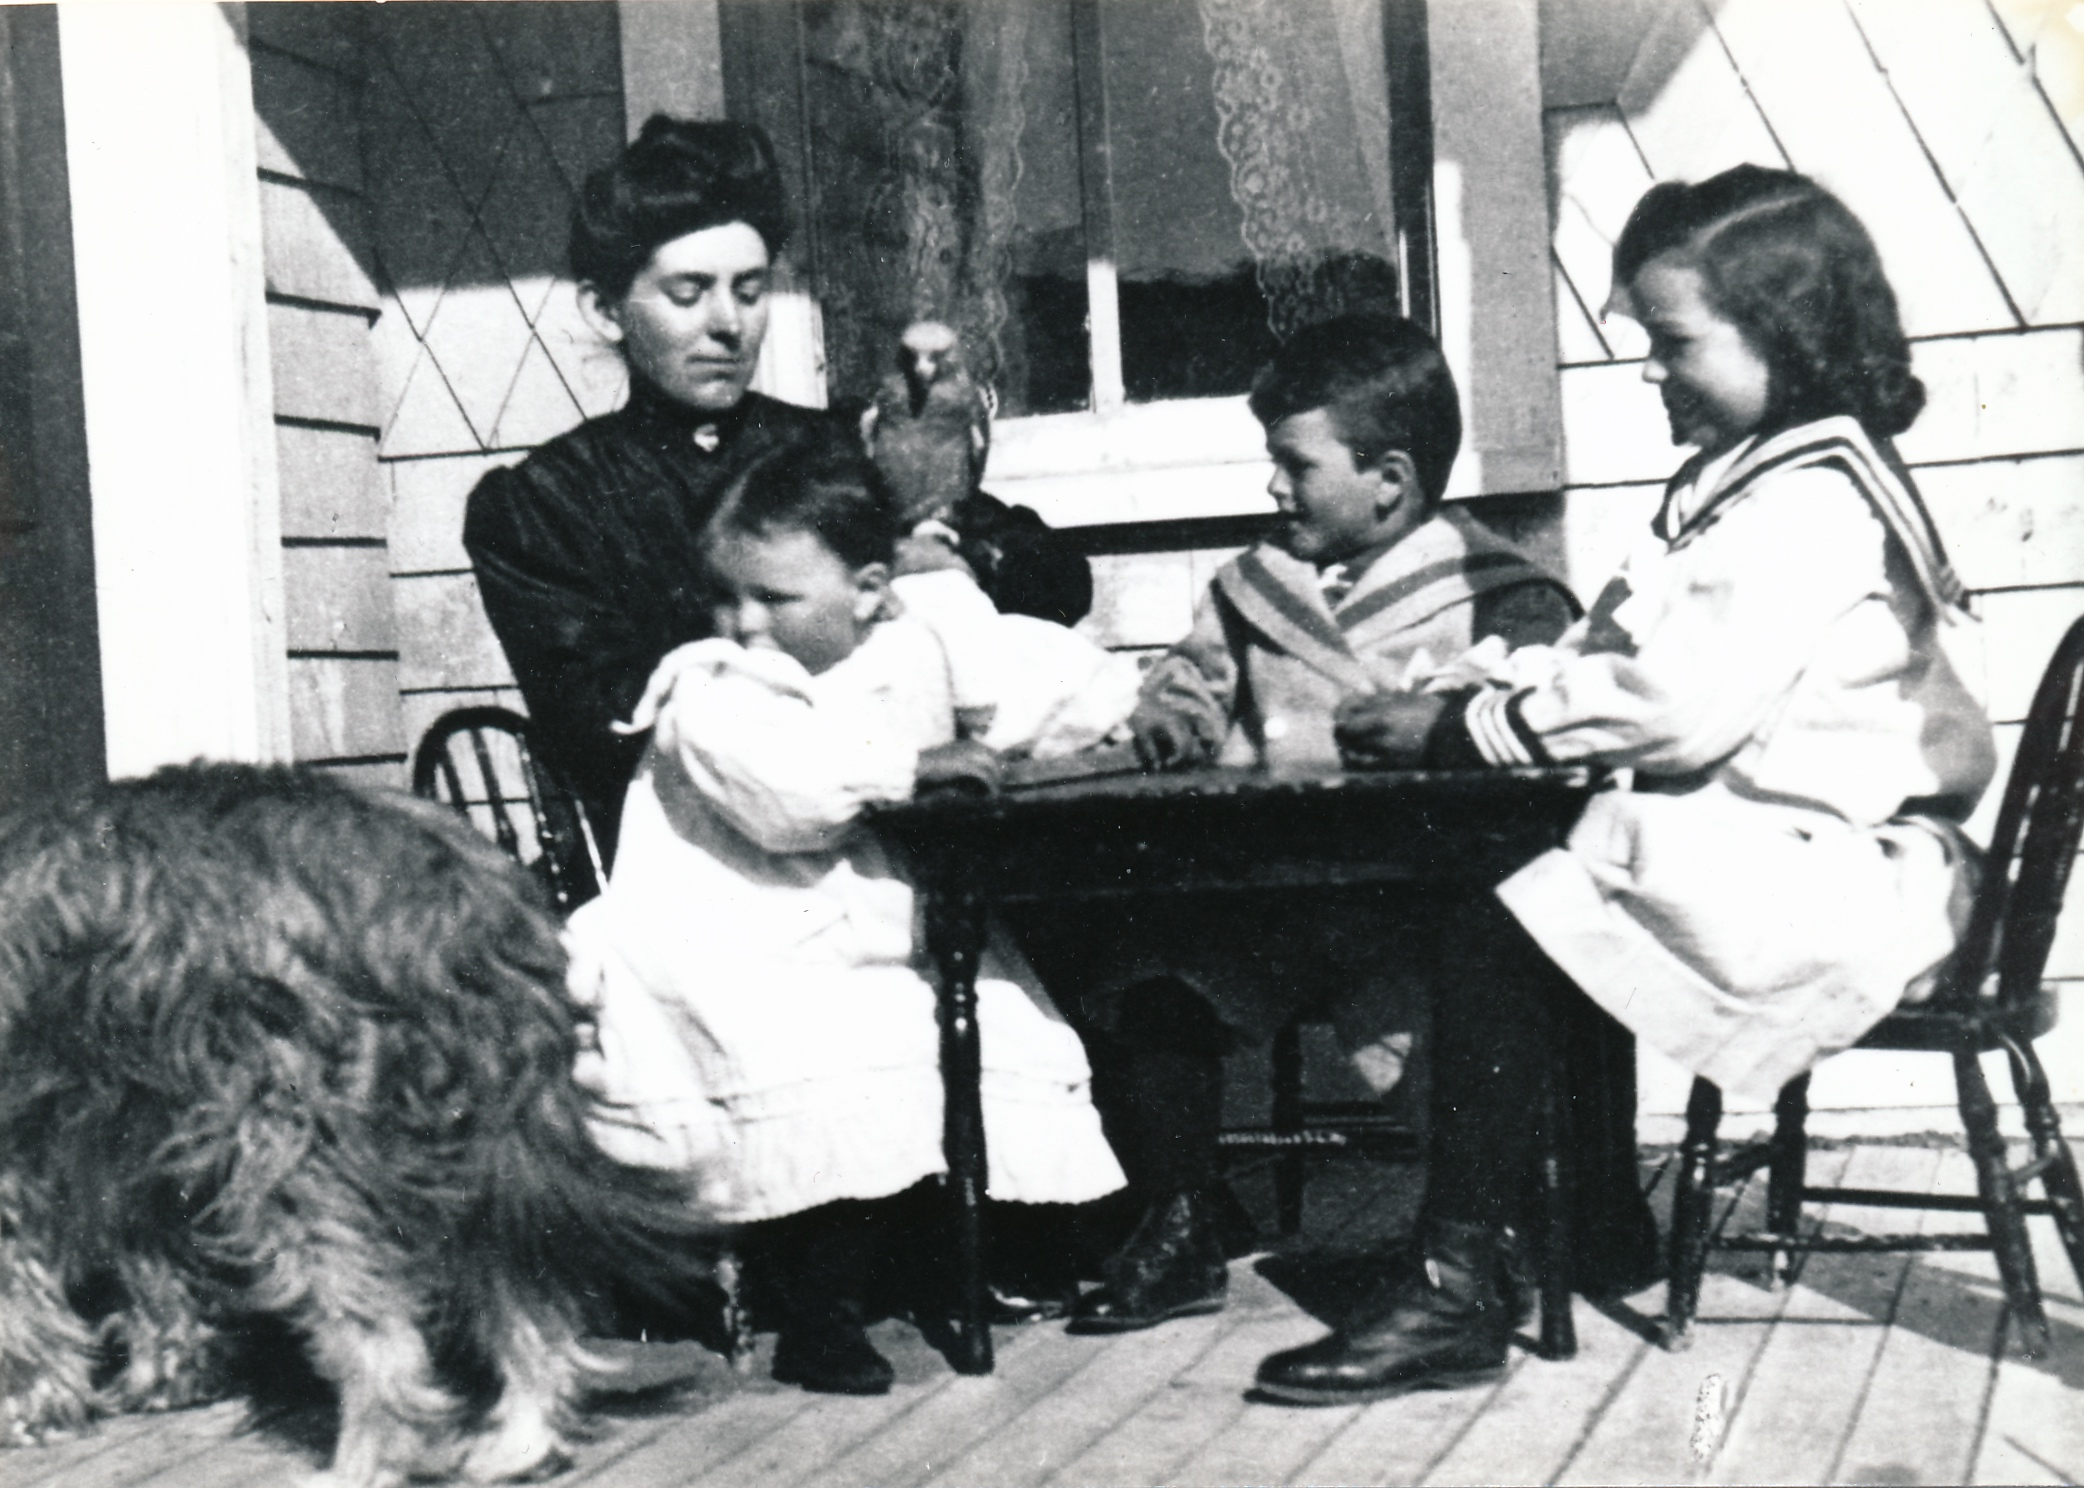 From the Glenbow Archives (Image: Lavinia Begg with her three children on the back porch of the ranch house at Dunbow, left to right, Lavinia Jr., Sandy and Norah. On Lavinia Sr.'s arm is Joe, her African grey parrot. She's wearing a high-necked blouse, the children all wear the same outfit:long sailor-type blouses with button-up boots. The children and the parrot seem fascinated by Mike a curly-haired dog with his hindquarters to the camera who seems to be eating,)